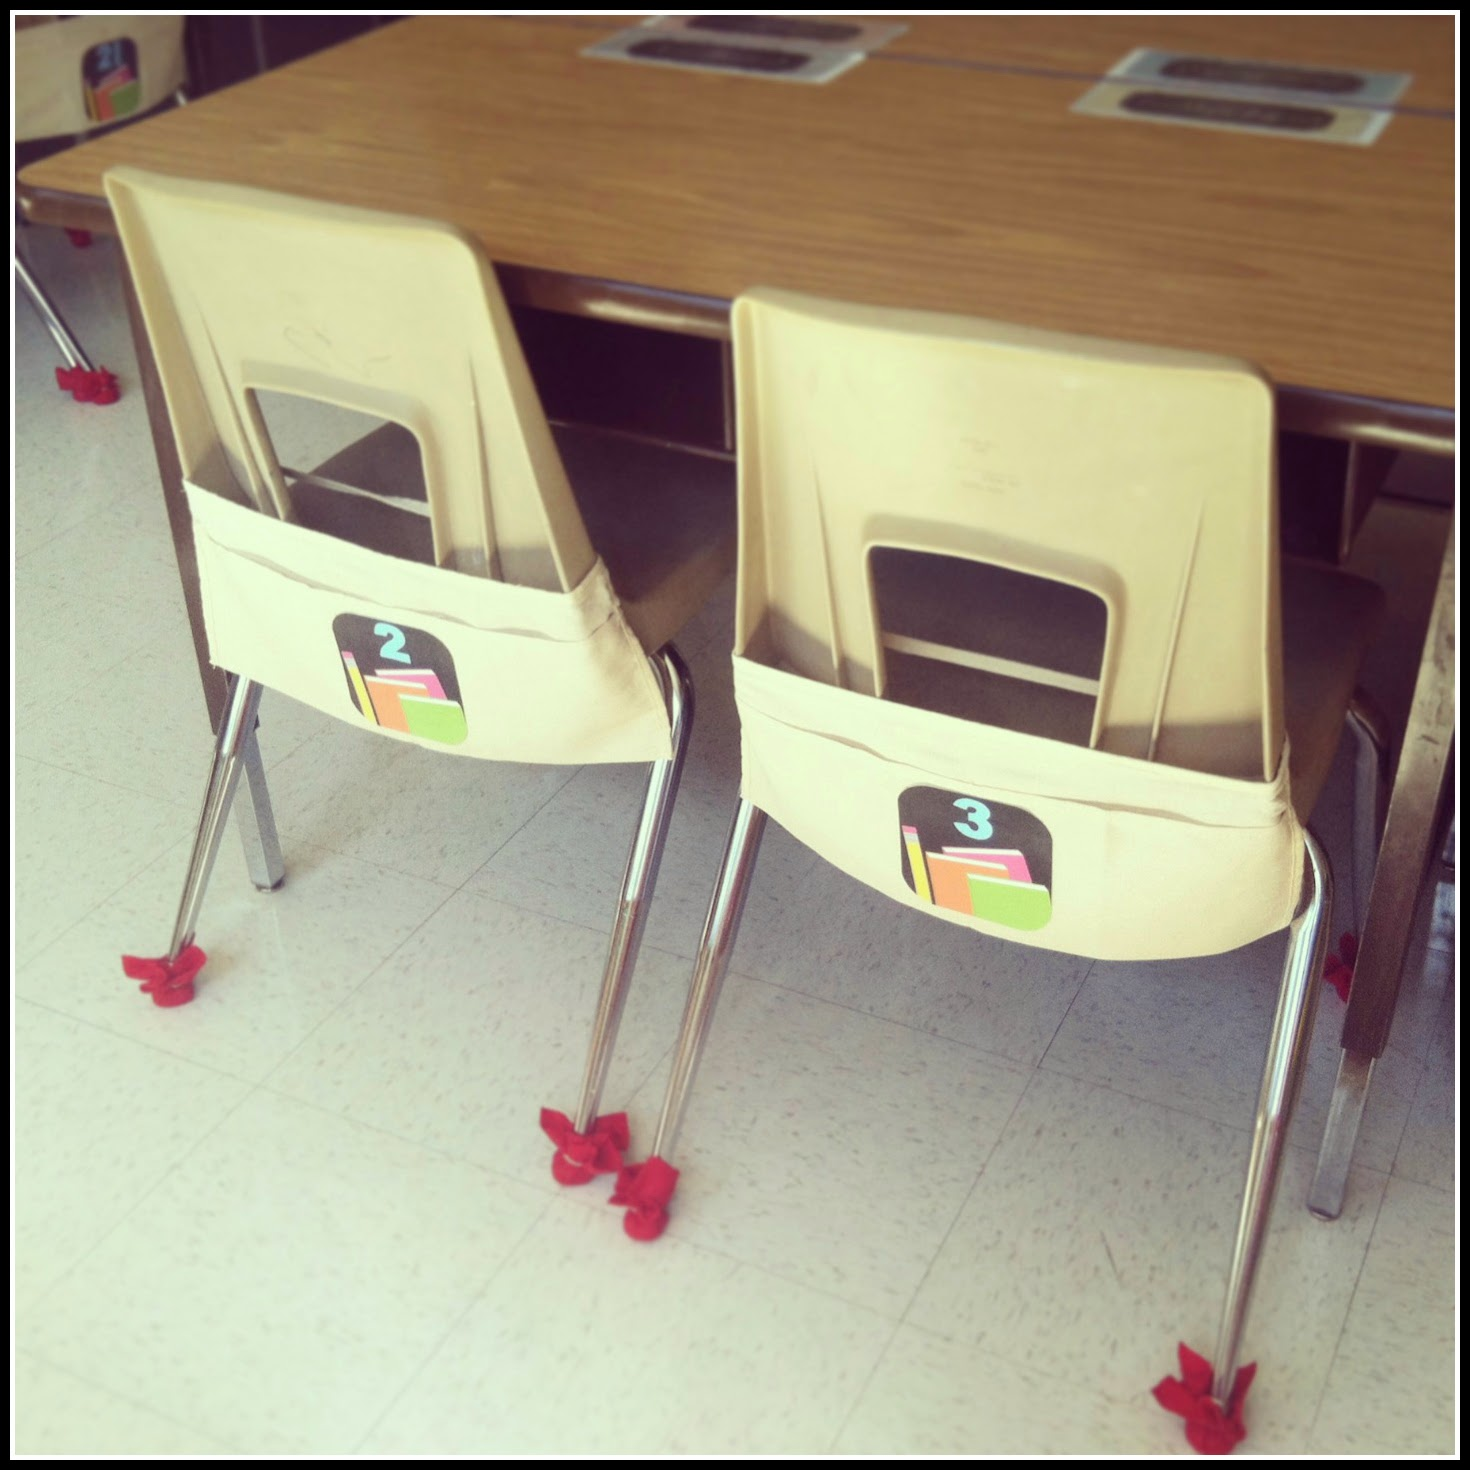 Classroom Organizer Chair Covers Mat For Wood Floors Teaching With A Mountain View Peek Of The Week